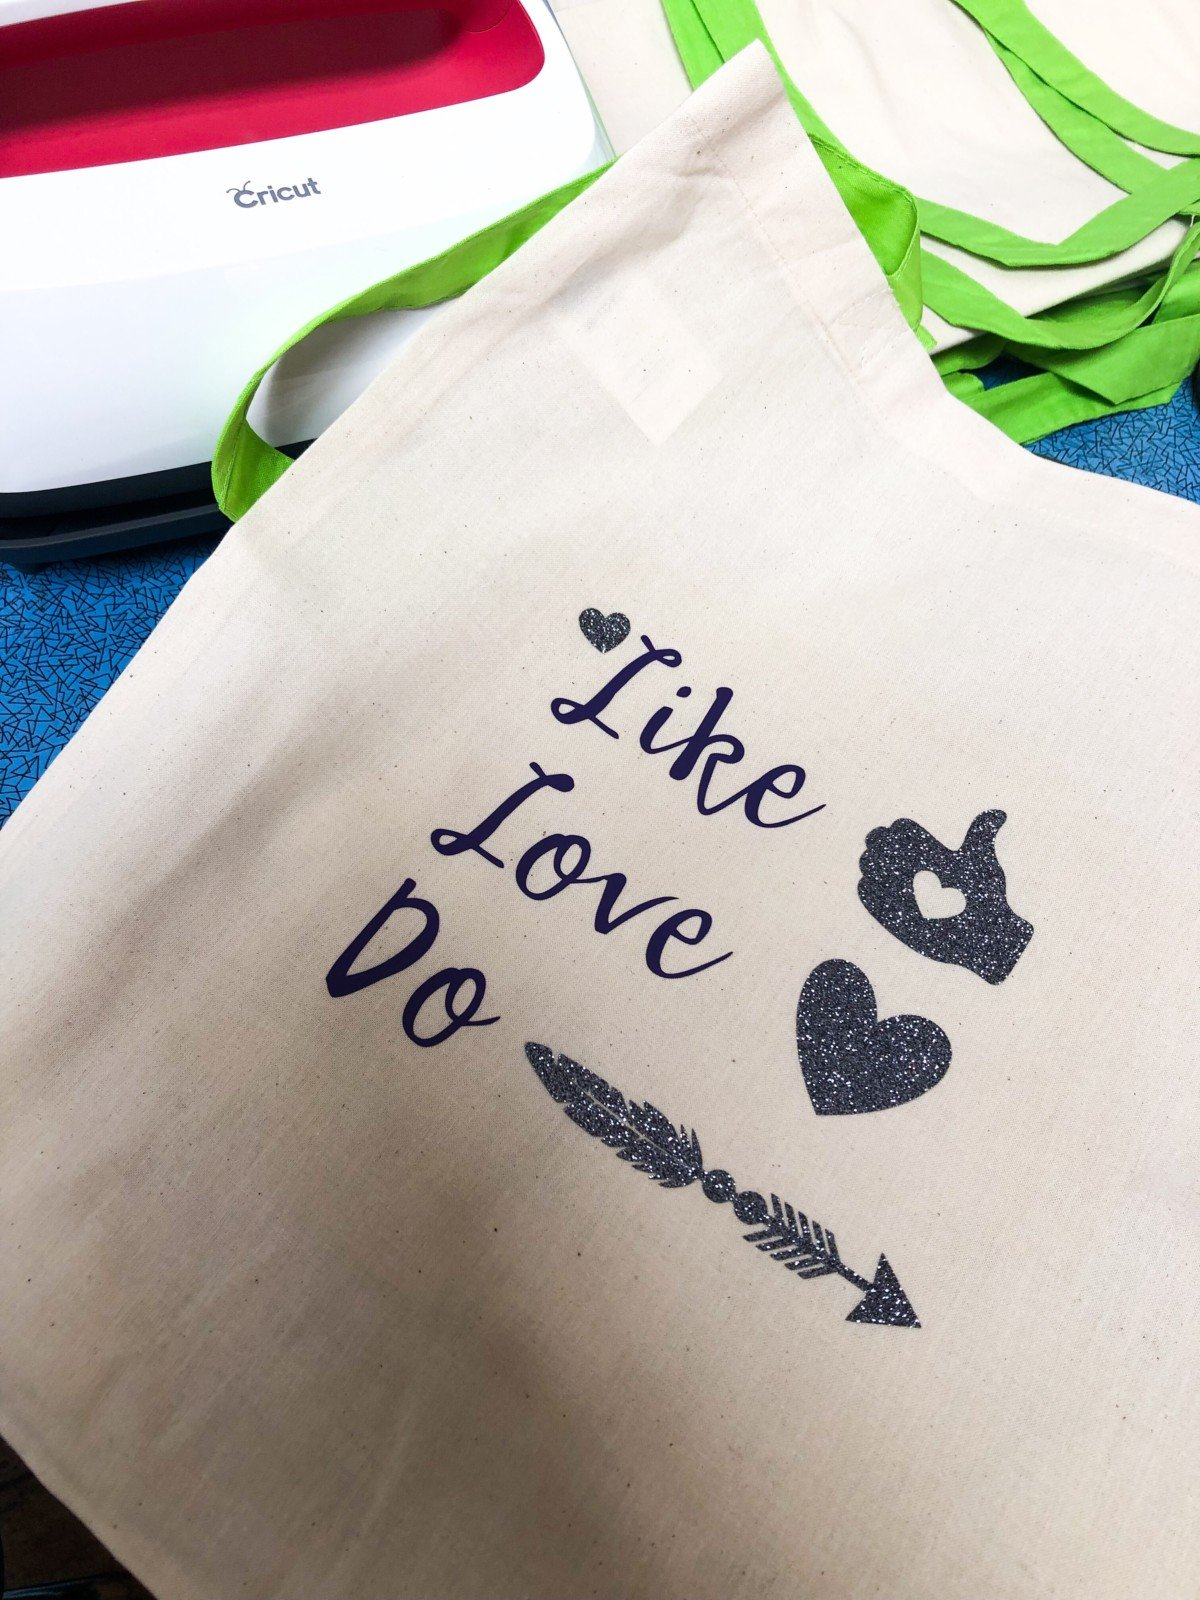 Cricut cut tote bag